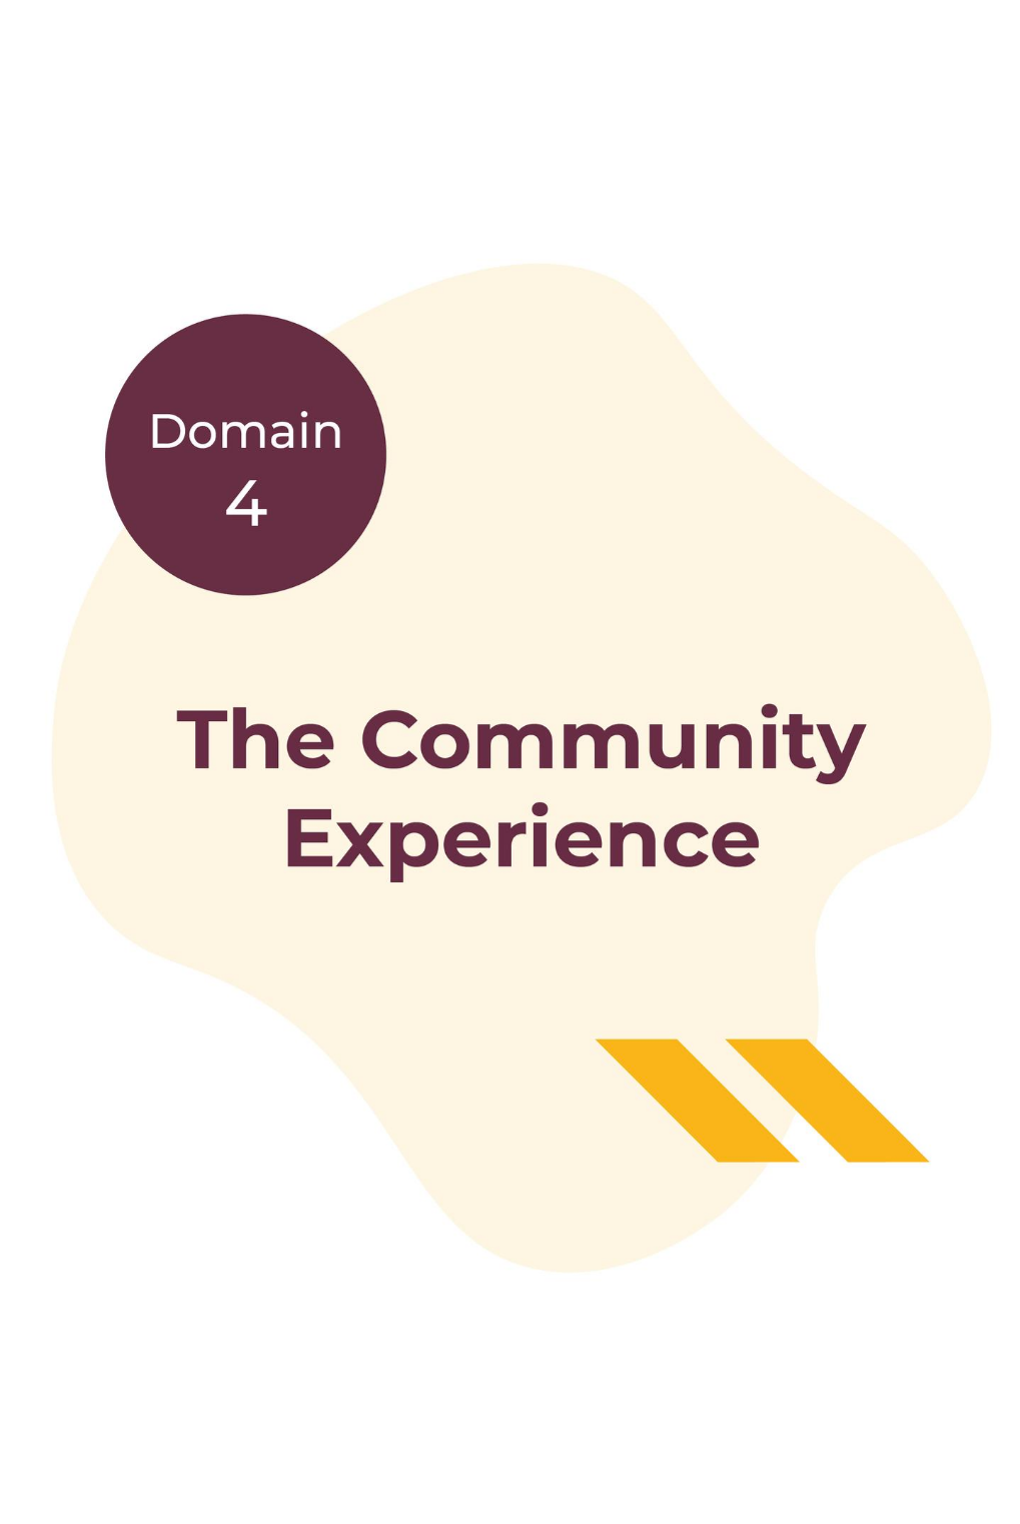 Domain 4 - The Community Experience